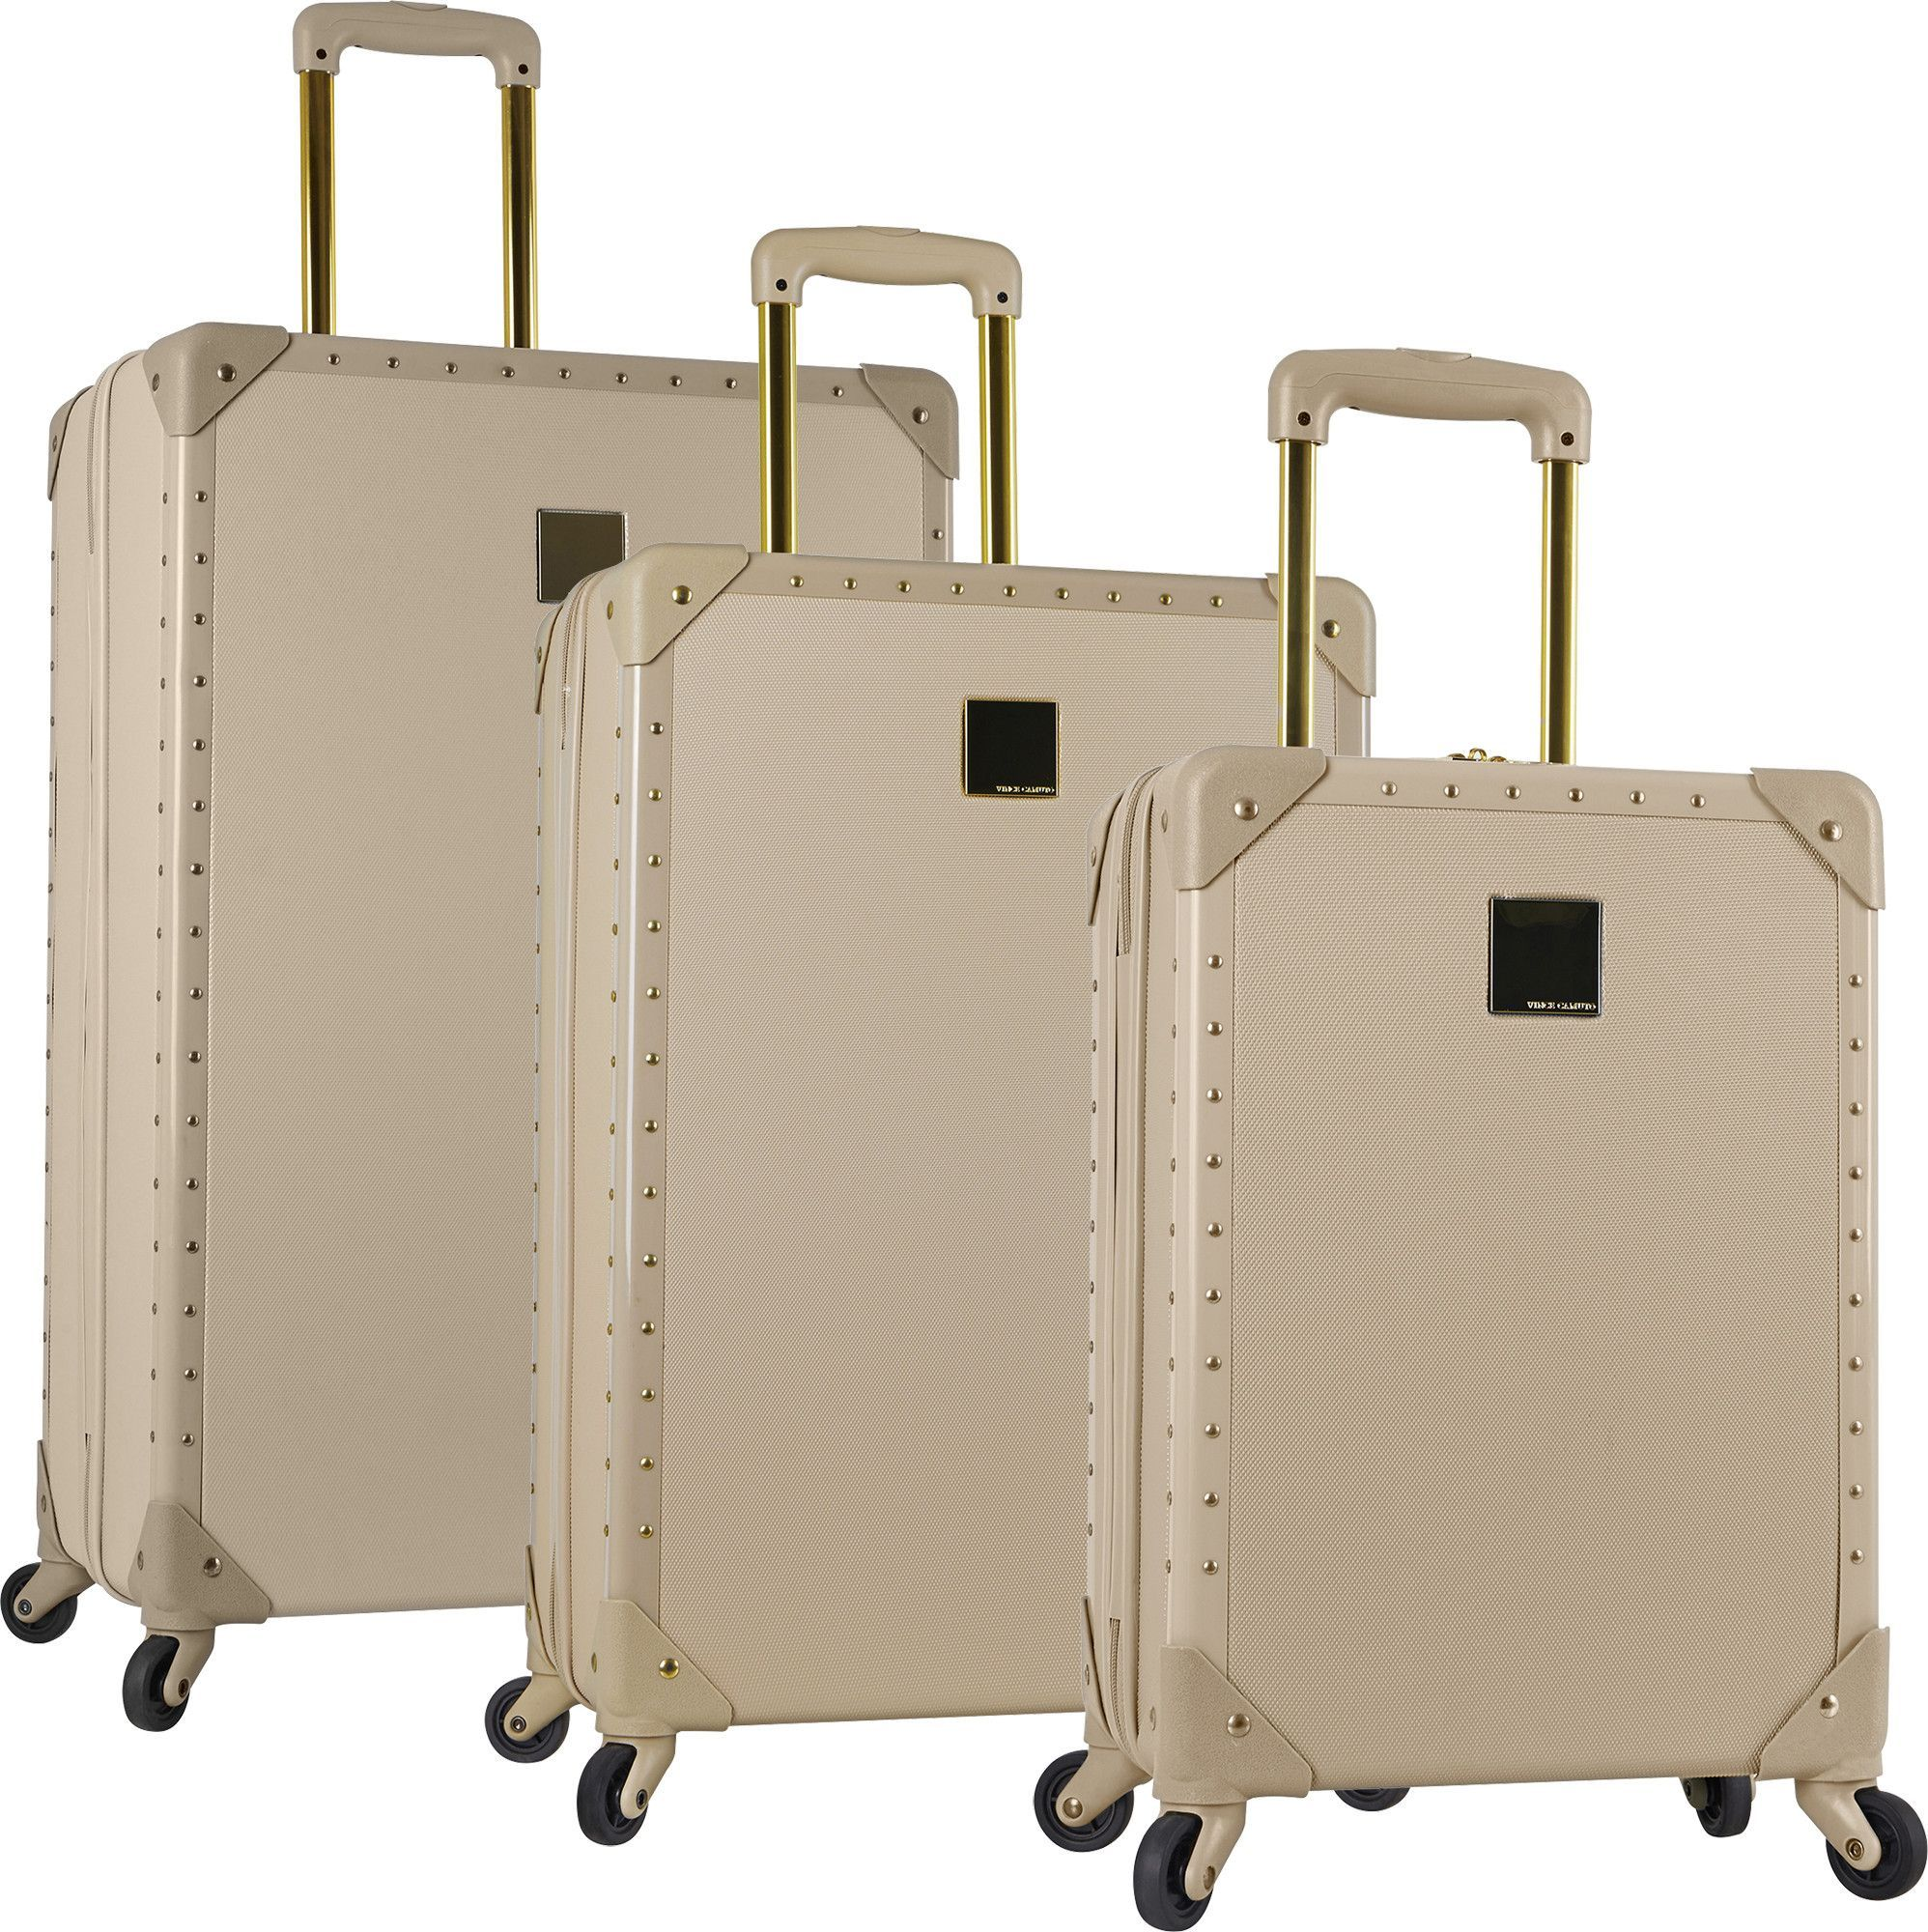 dc92a41c6 Vince Camuto Jania 3 Piece Hardside Spinner Luggage Set   PARIS ROLL ...